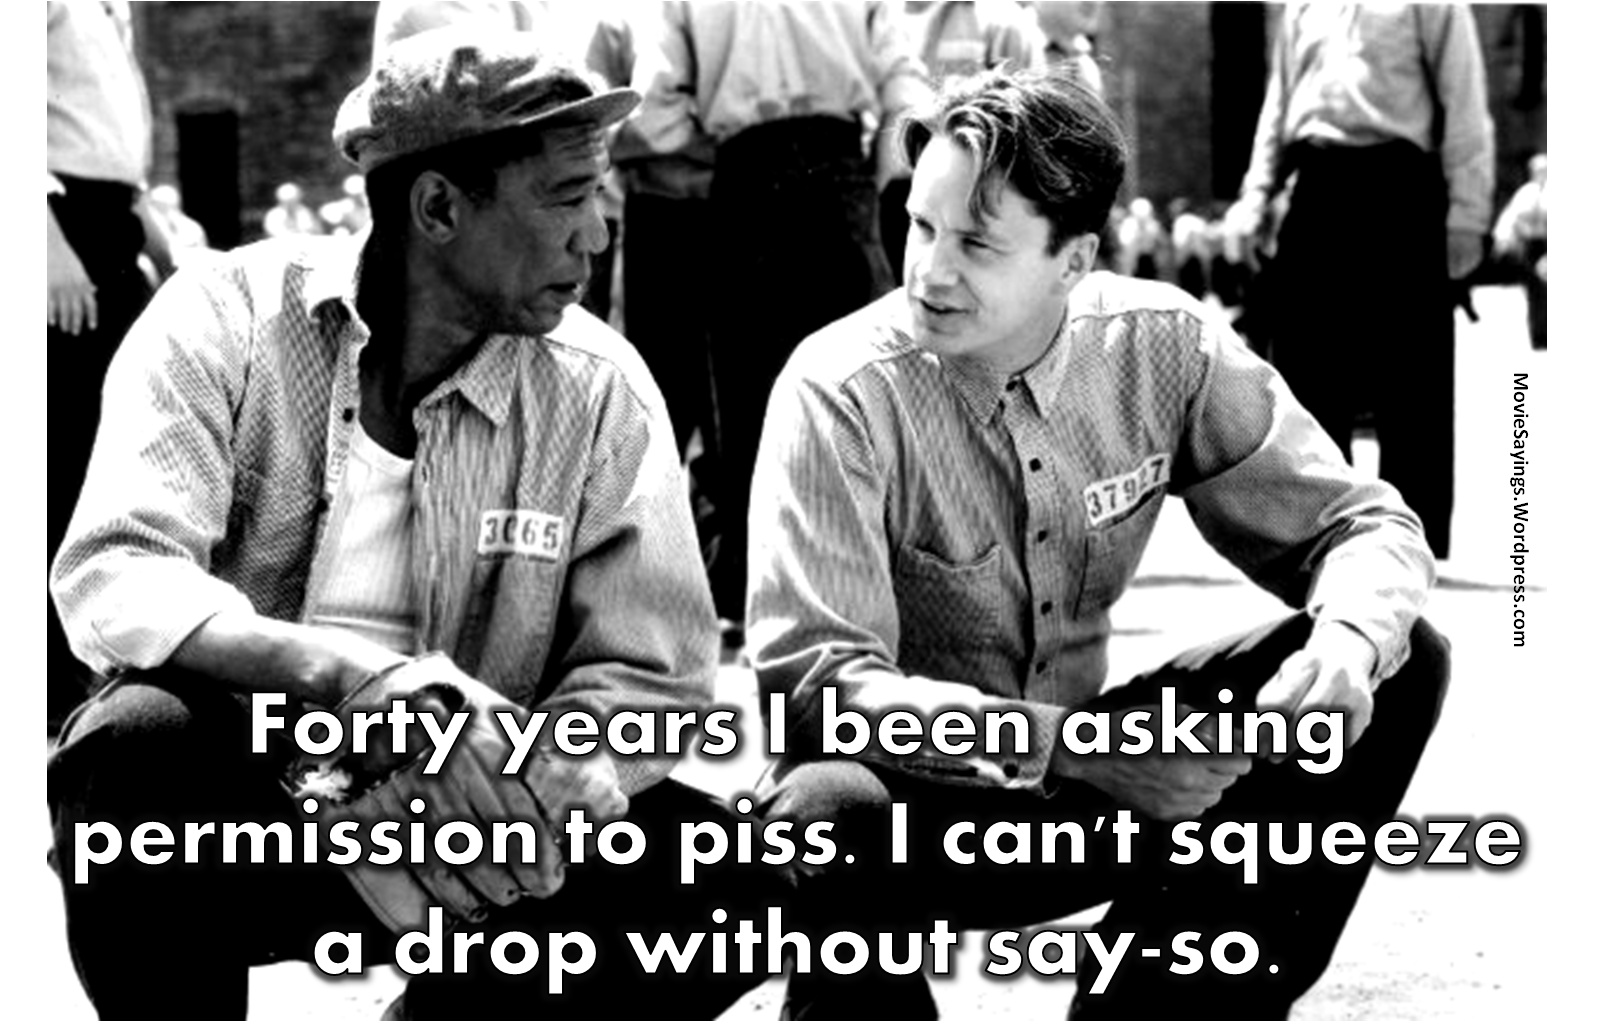 """shawshank redemption reds redemption In ellis """"red"""" boyd's third and final parole hearing, he finally says what the parole board was hoping to hear, and is granted release more than 40 years after he was first admitted."""